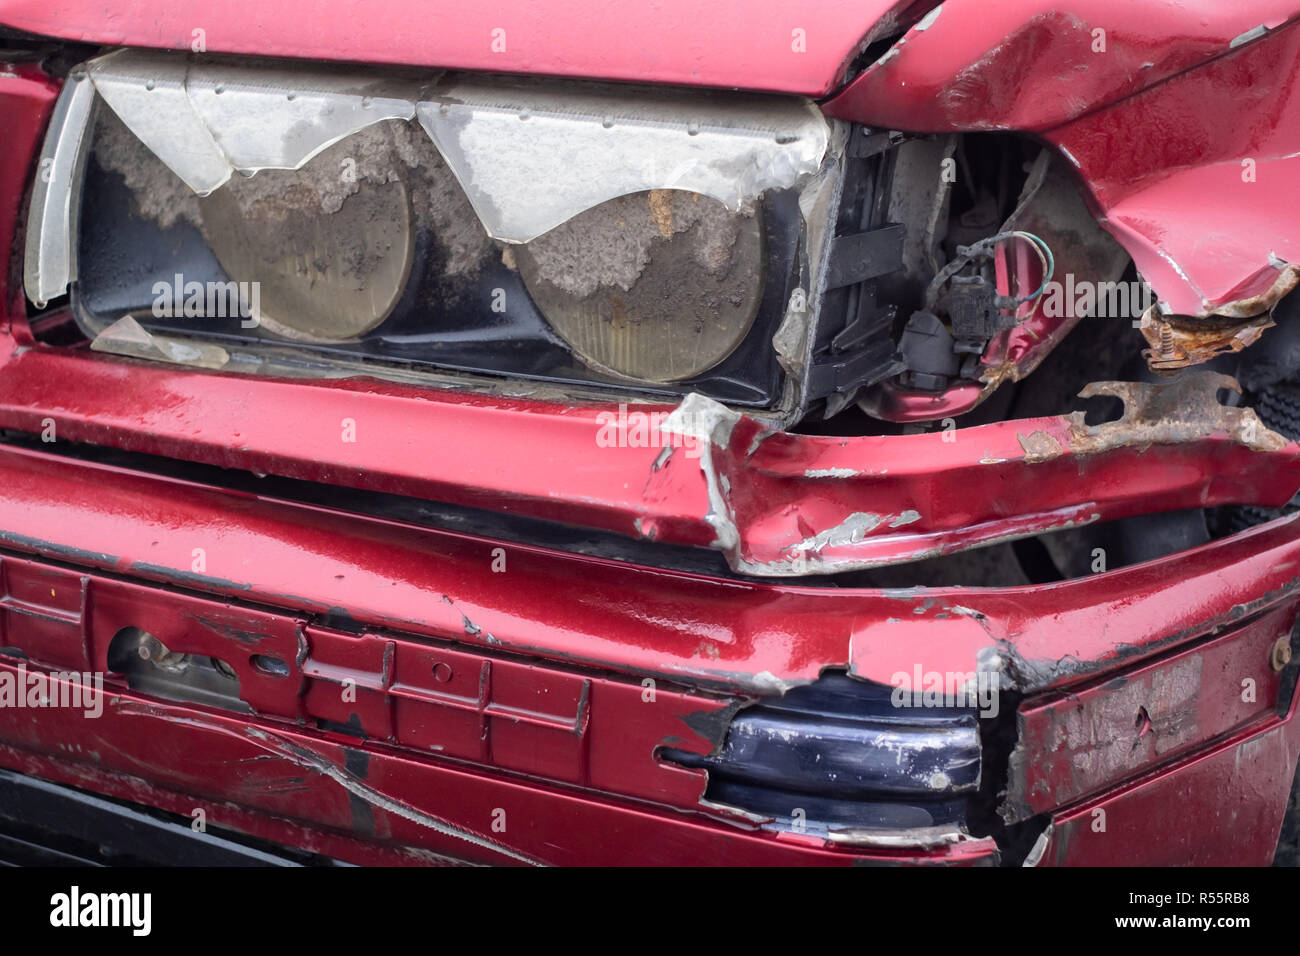 damaged car headlamp after accident, subject to insurance claim - Stock Image